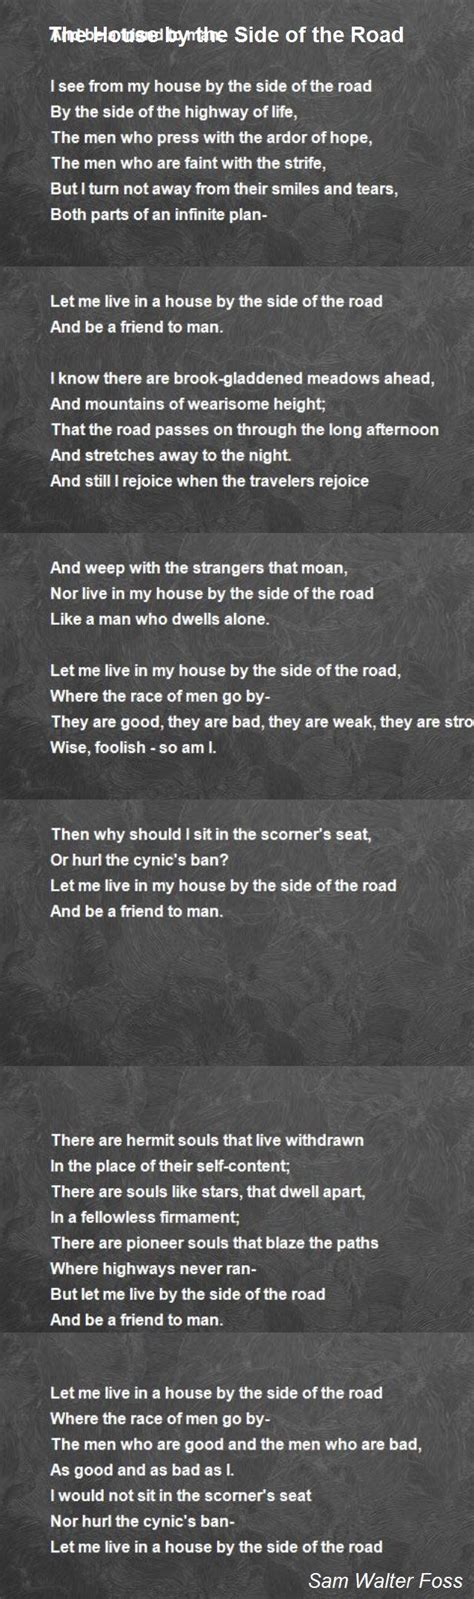 house by the side of the road the house by the side of the road poem by sam walter foss